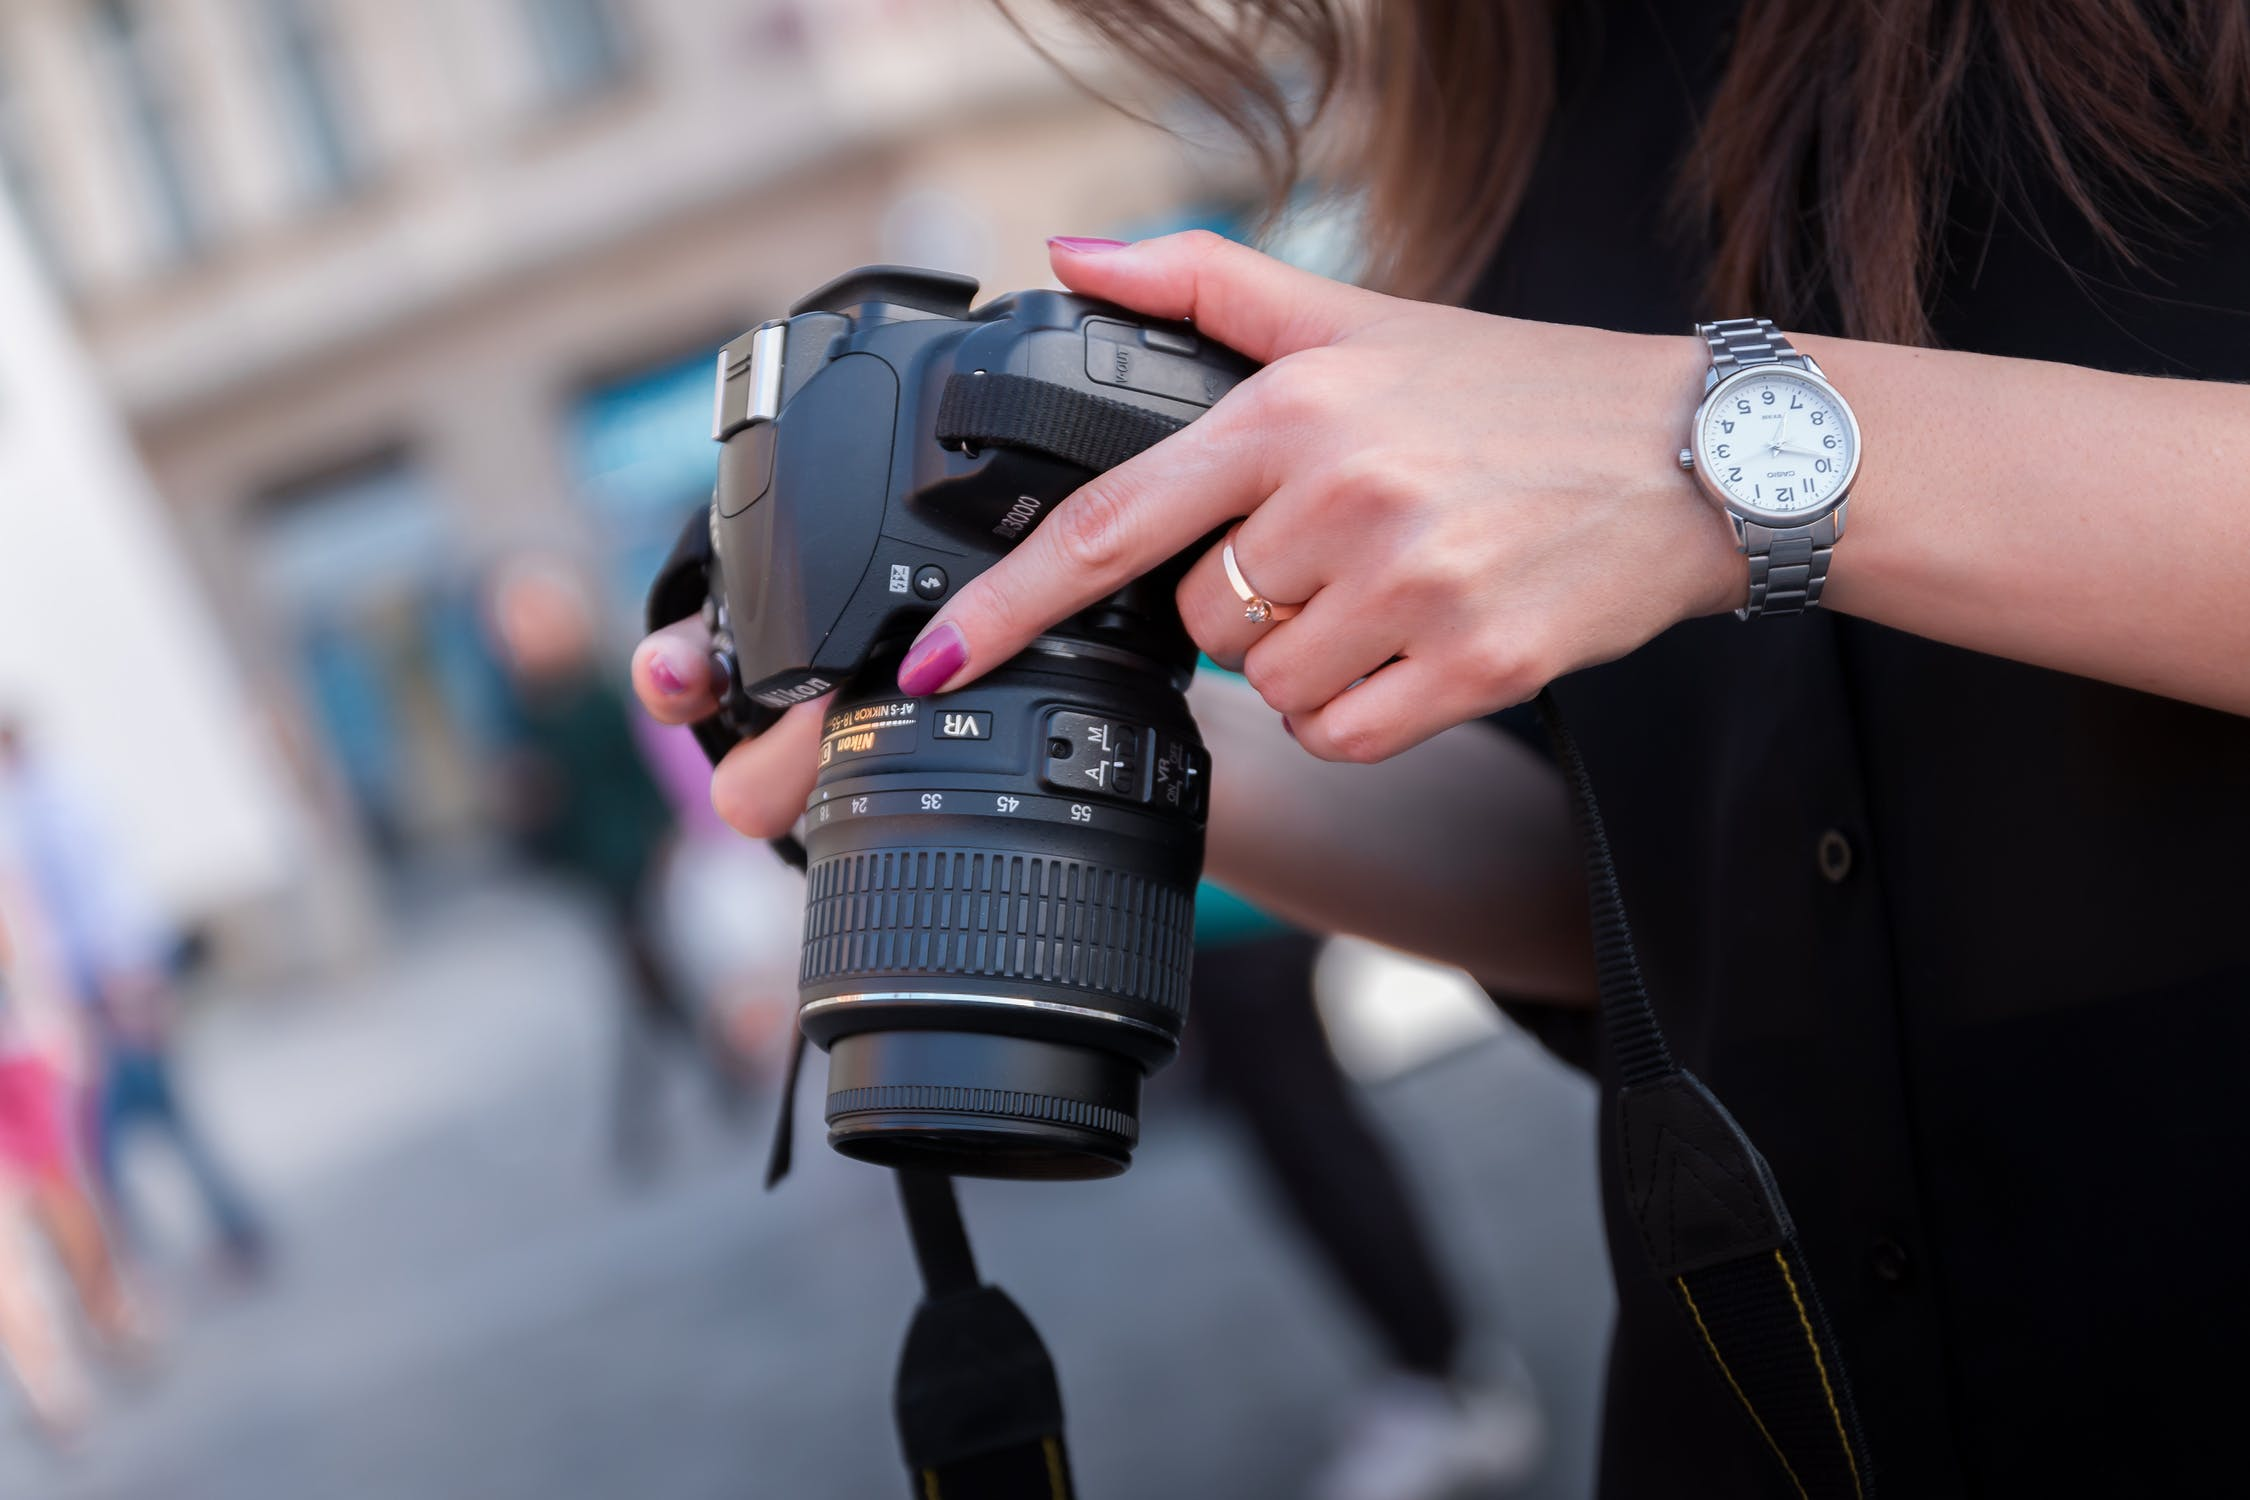 David Koonar's Guide to Using Your New DSLR Camera